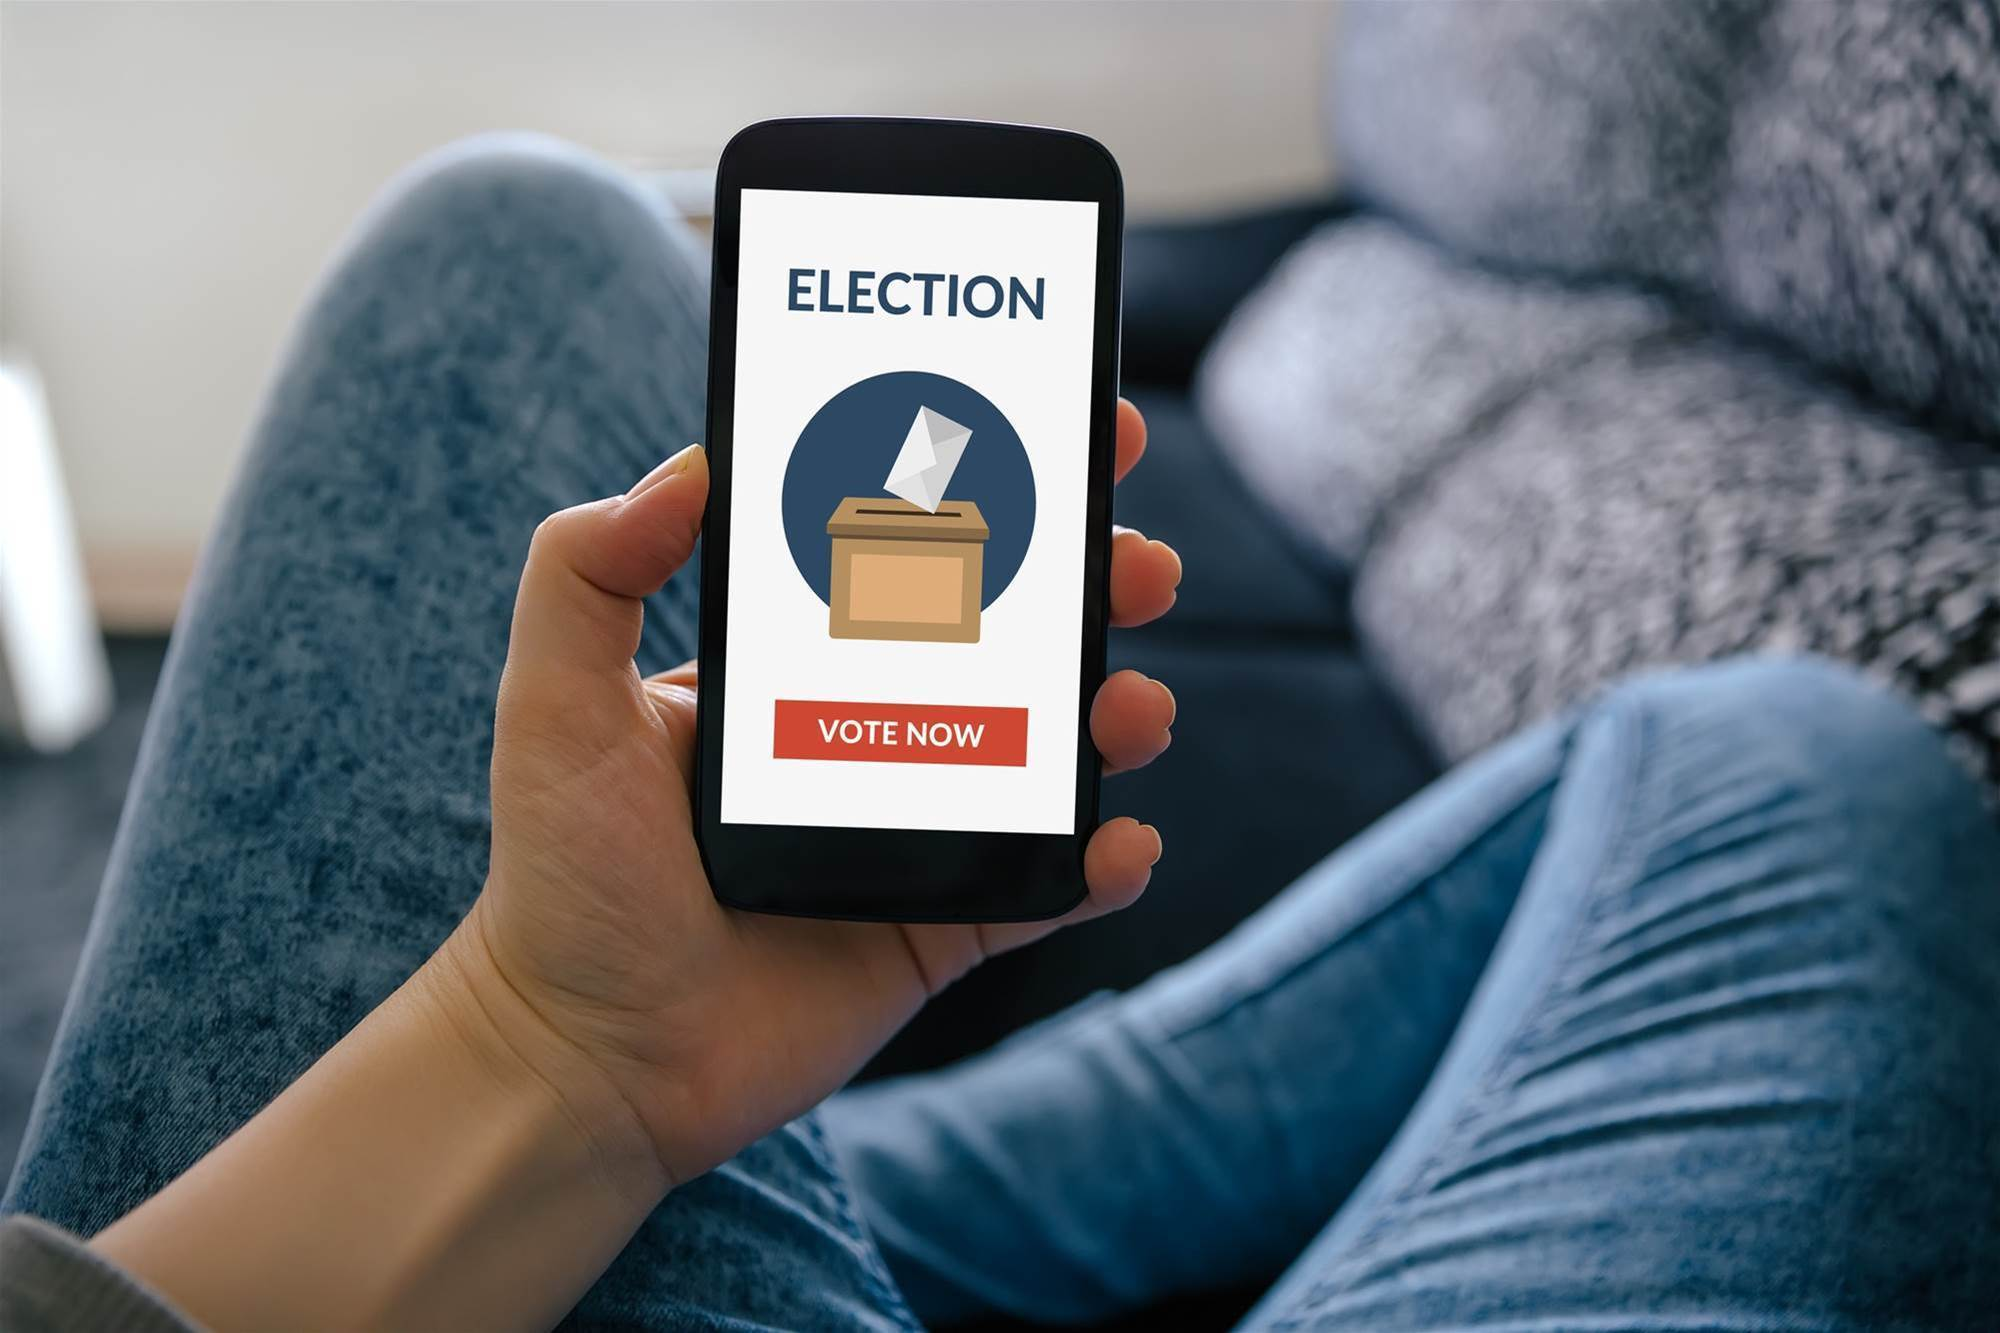 The AEC is building an app for enrolment, polling info